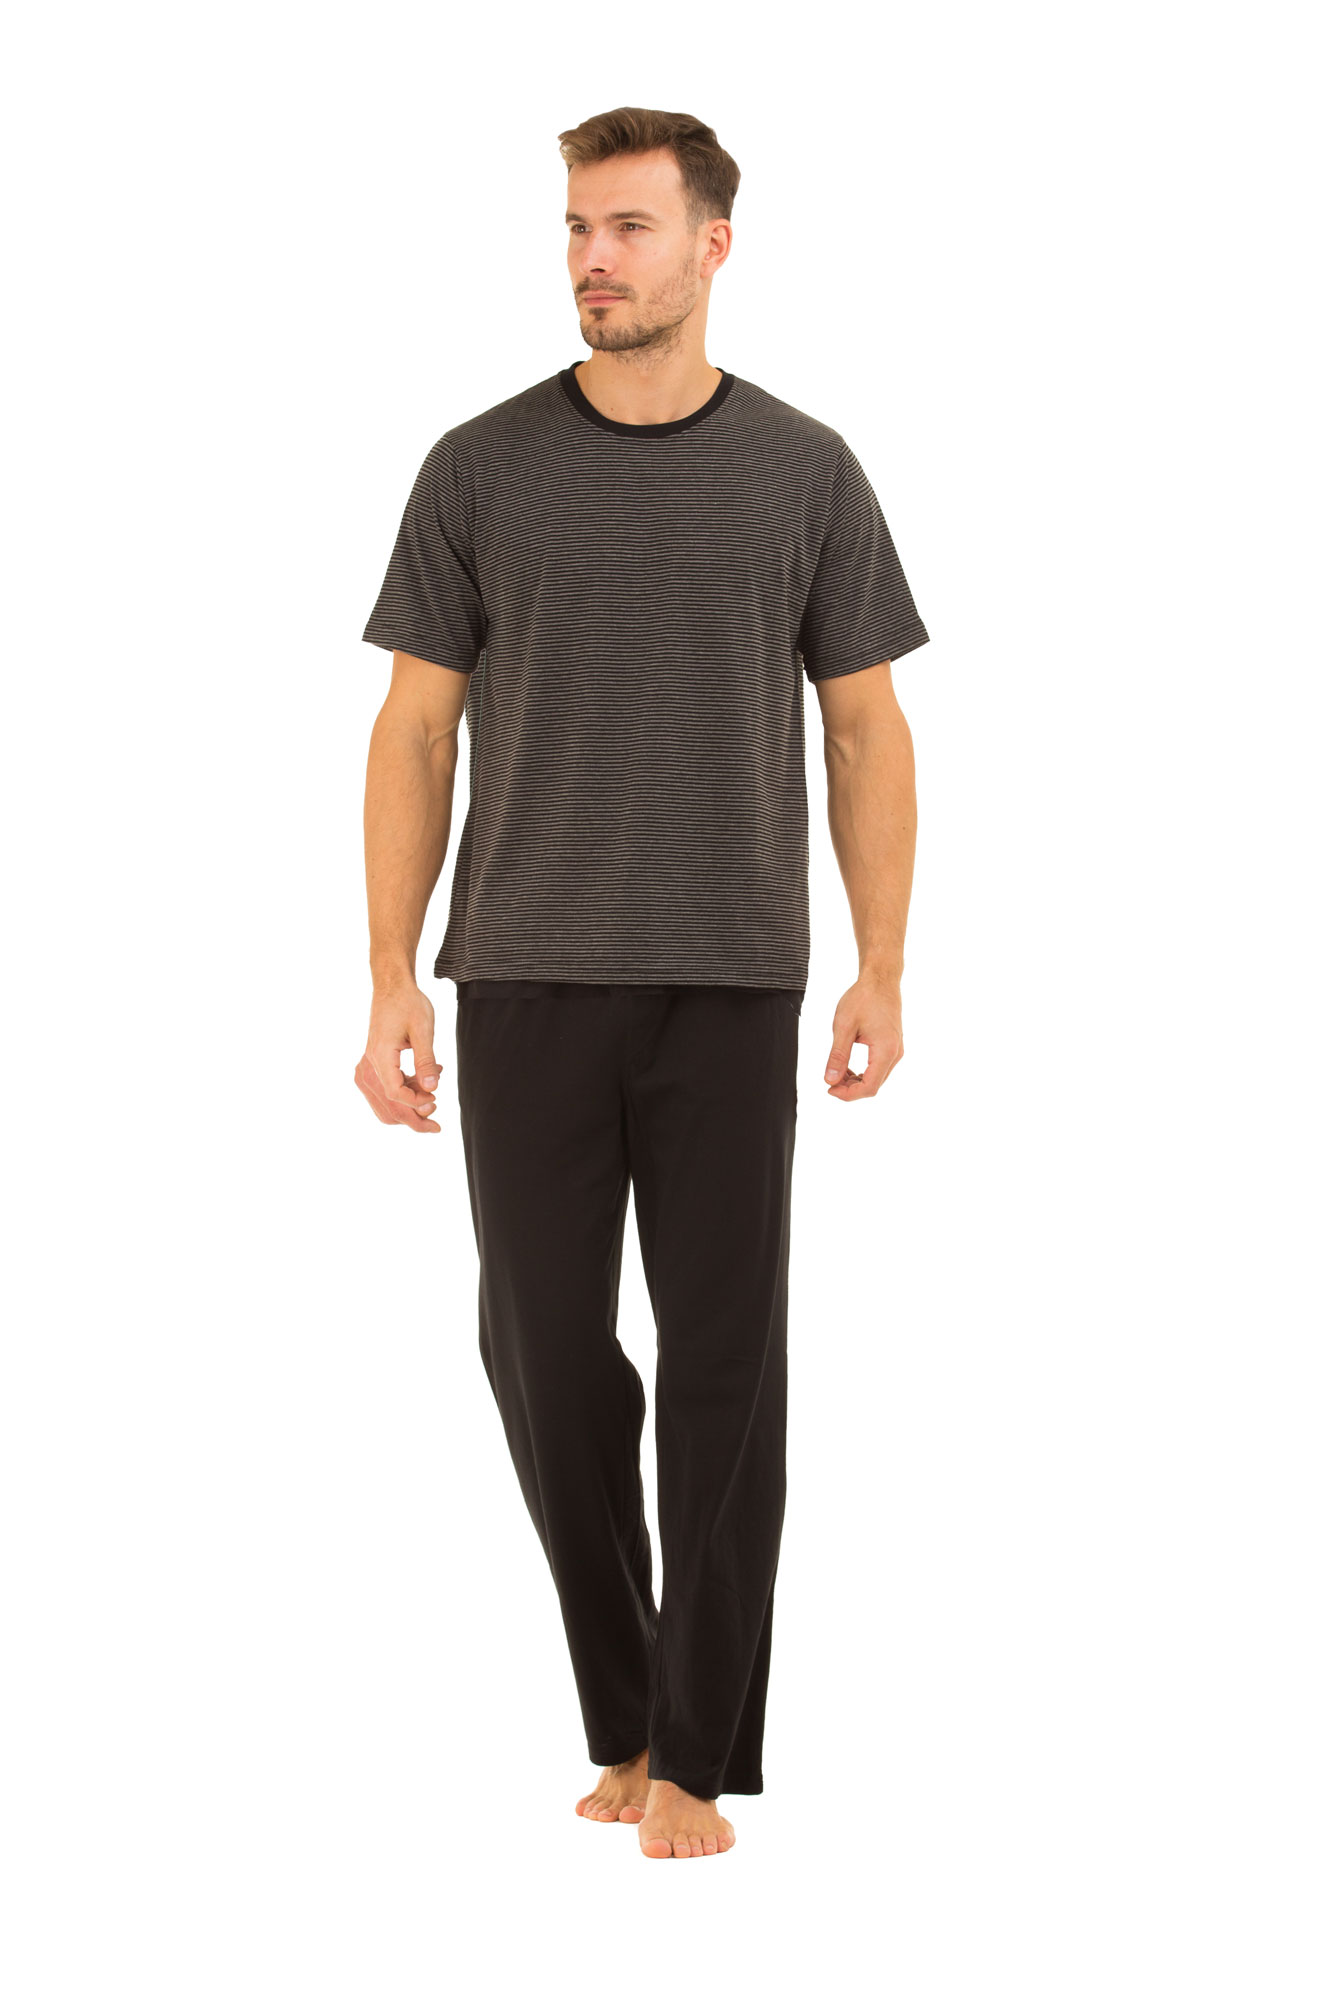 Men's Loungewear Relax with CALVIN KLEIN men's loungewear, including crewneck sweatshirts, drawstring hoodies, stretch shorts, sleepwear pants. and more. Crafted from plush blends, and detailed with signature logo designs.